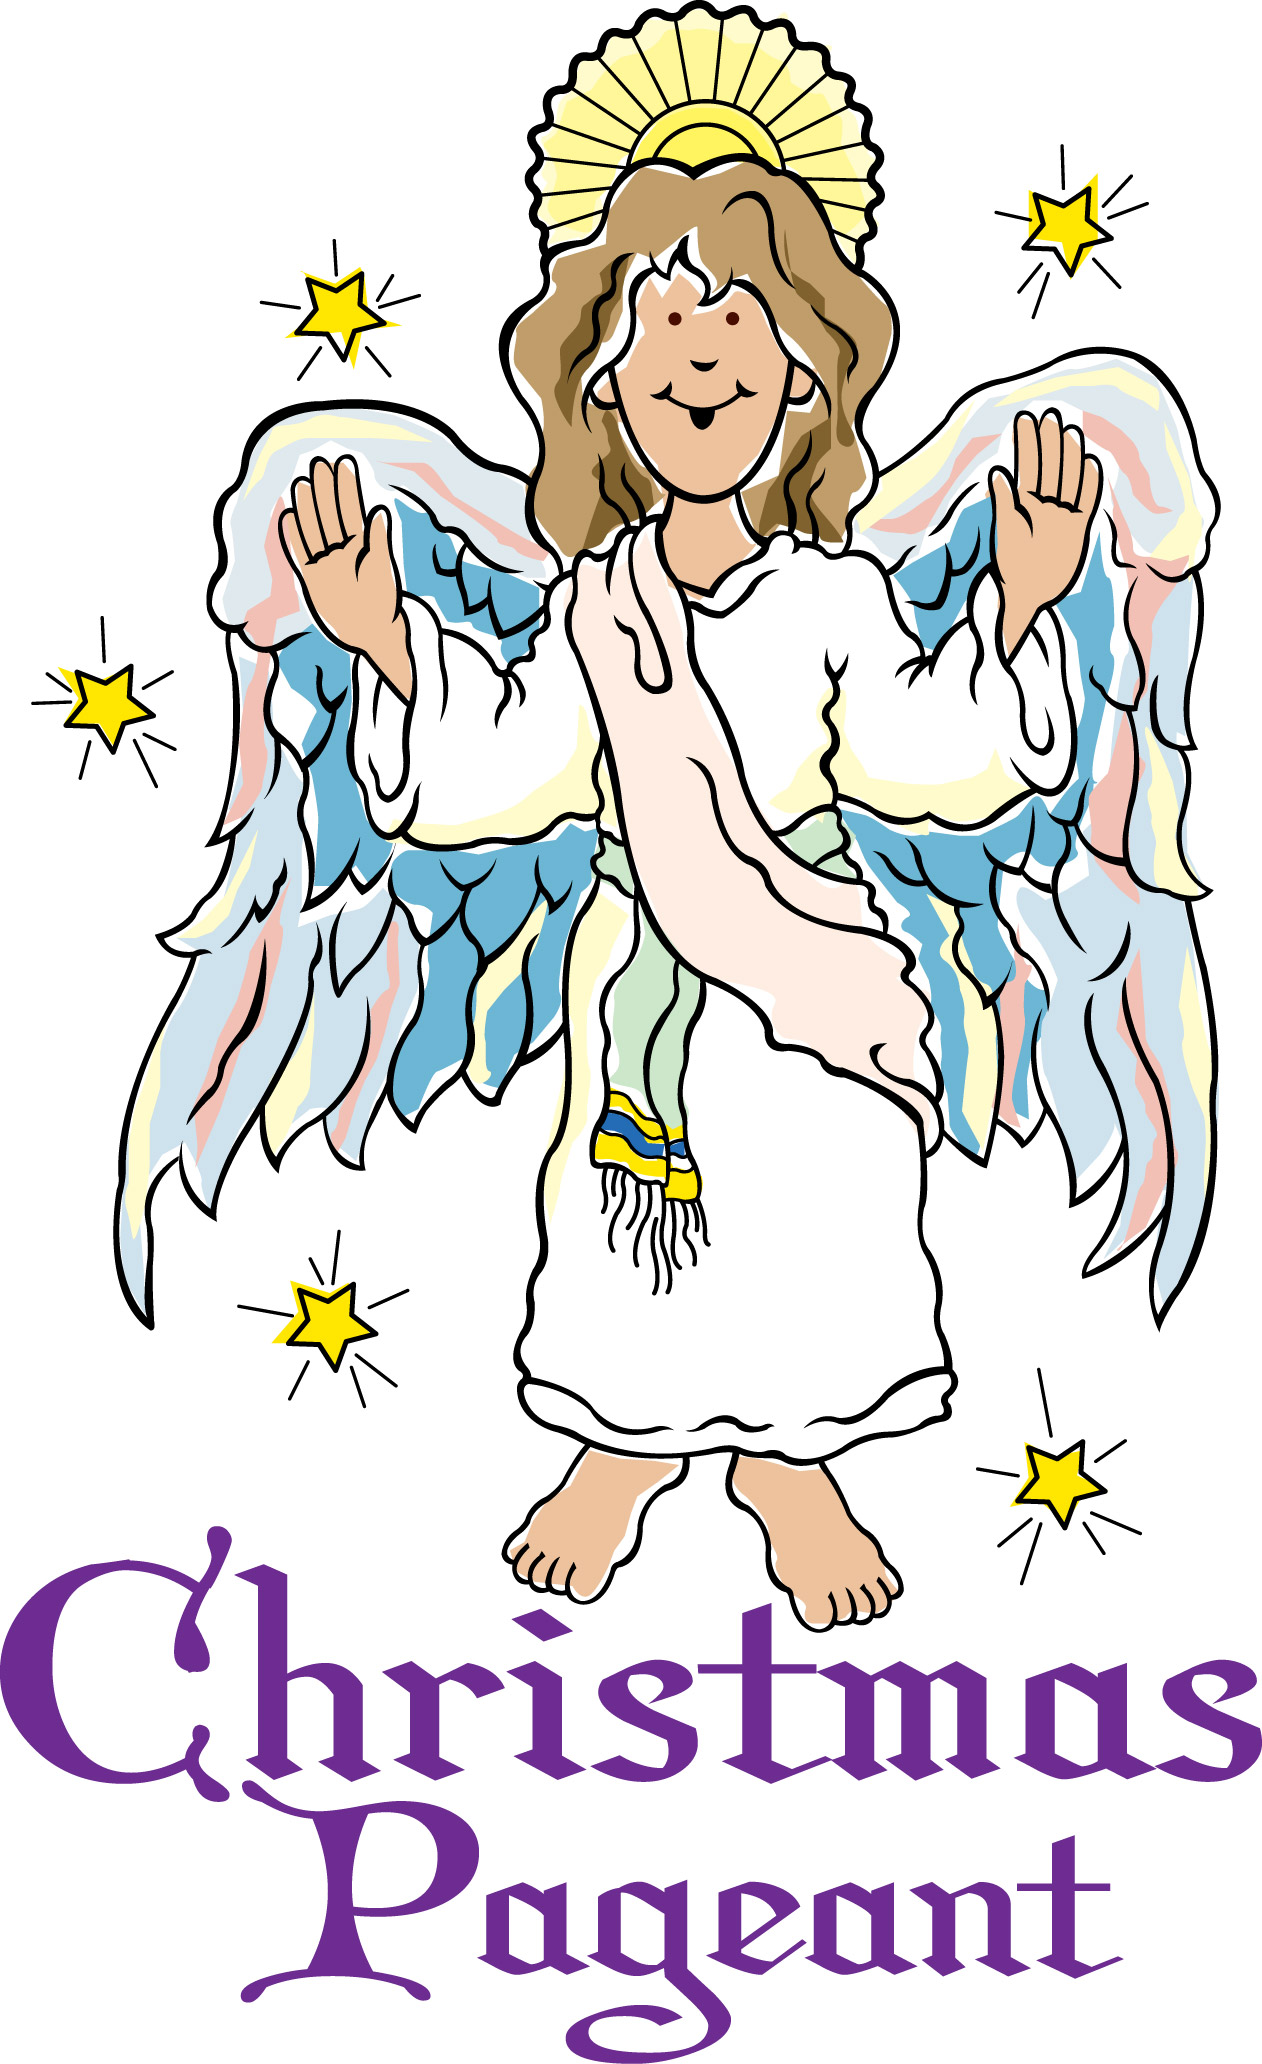 Free Christmas Pageant Cliparts, Download Free Clip Art.